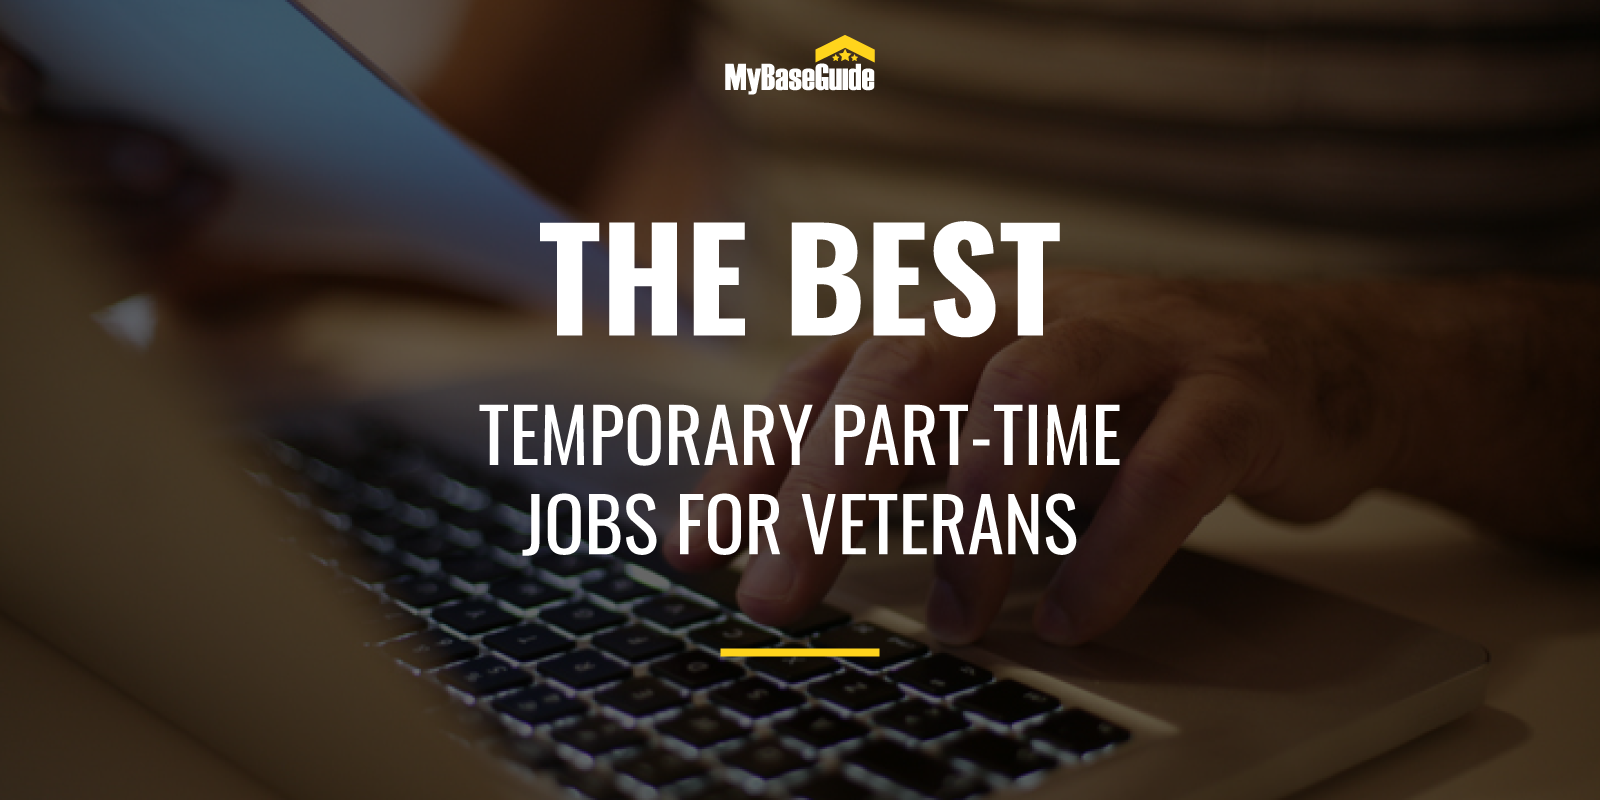 Some of the Best Temporary and Part-Time Jobs for Veterans